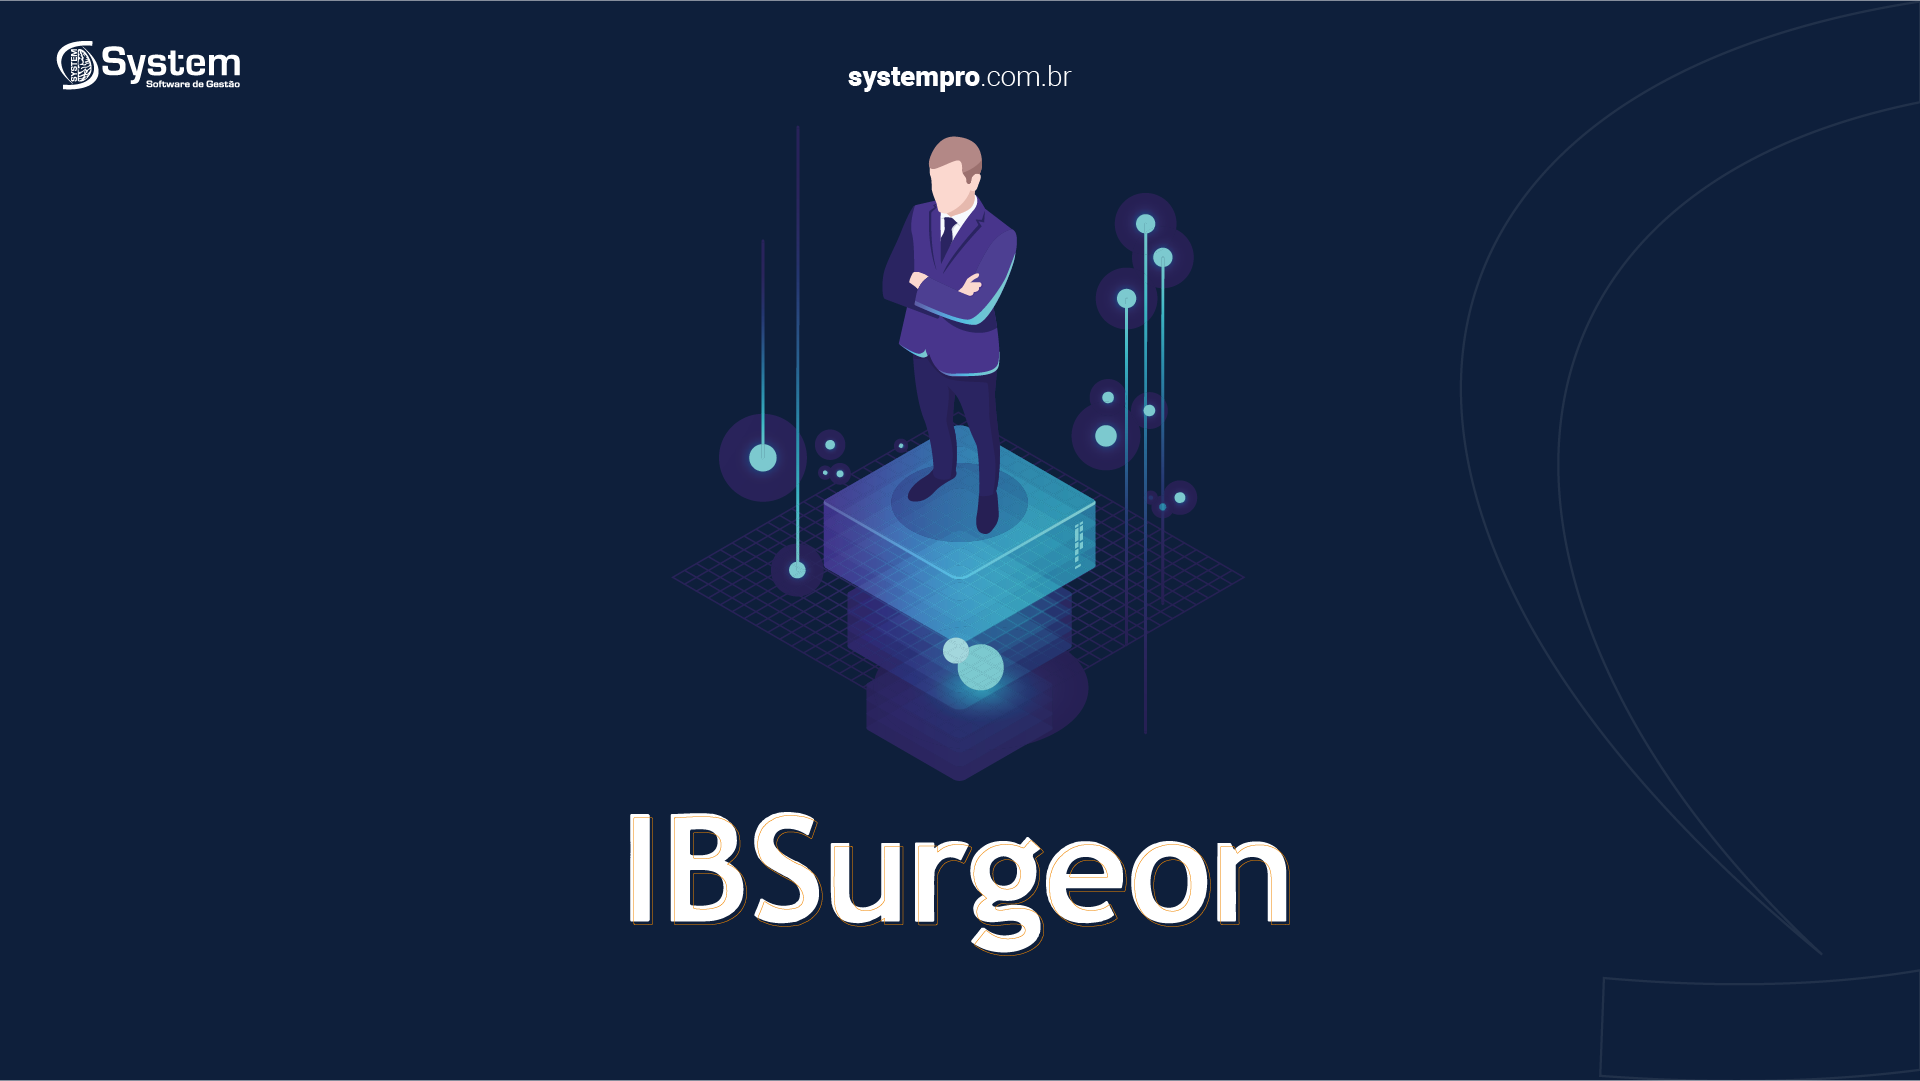 IBSurgeon